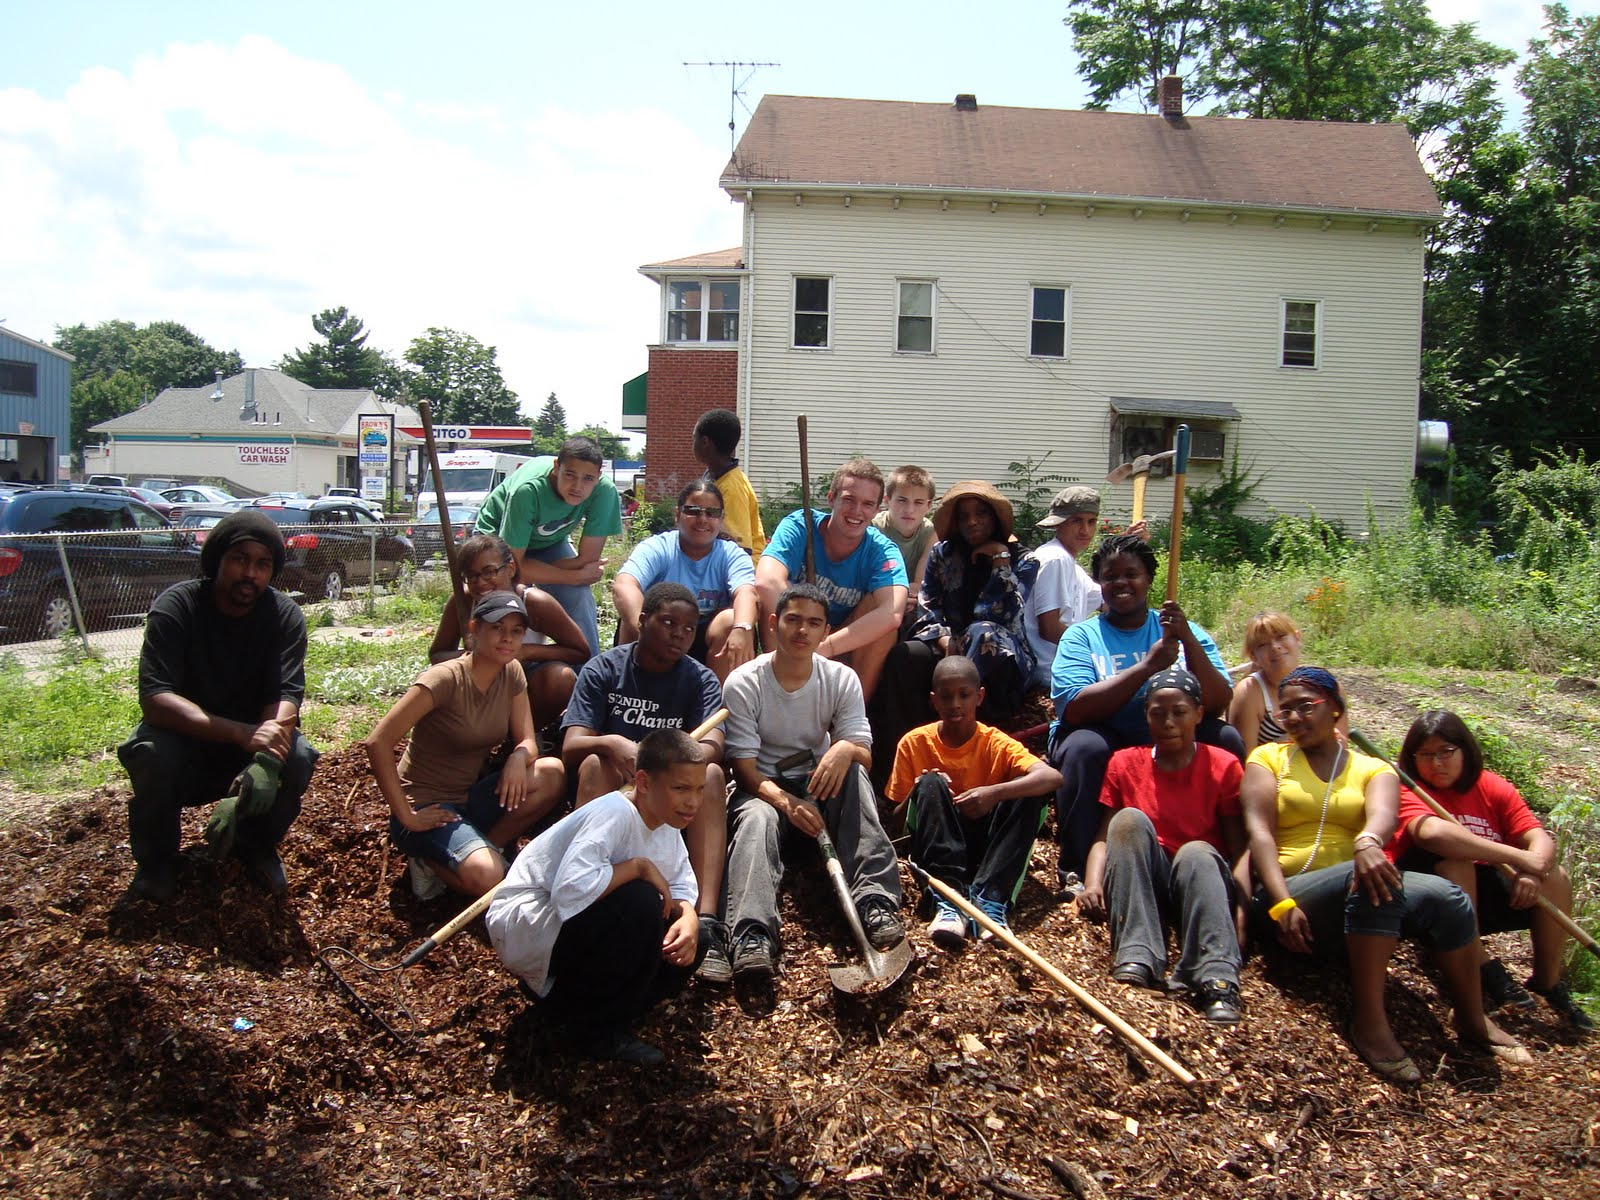 Volunteer work in a community garden.